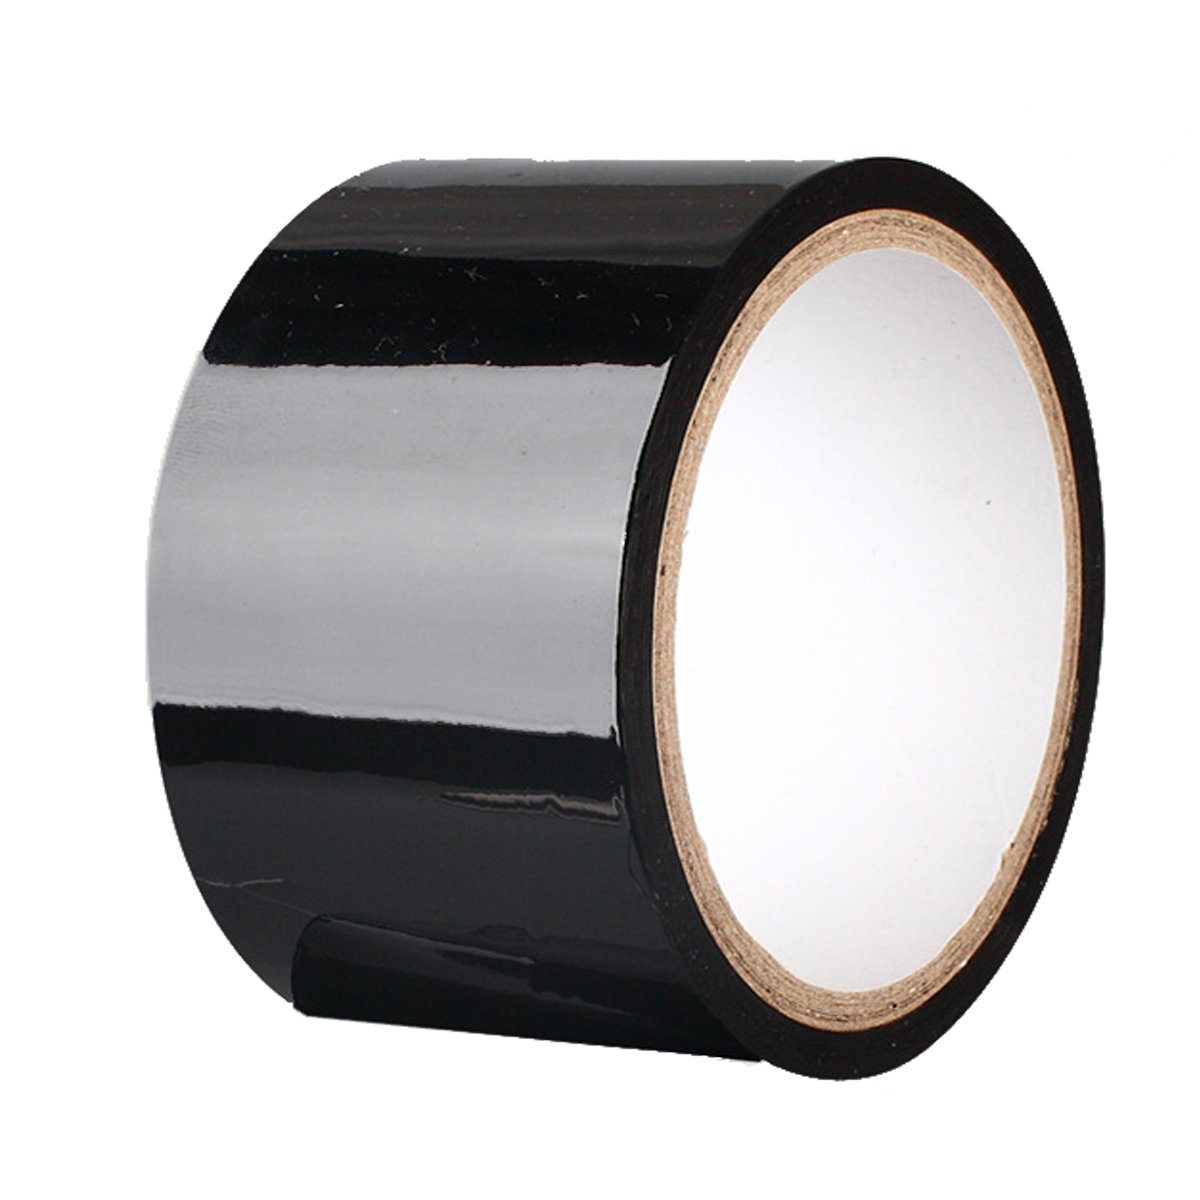 Black Pleasure Tape Static Tape,No Glue Electrostatic Adsorption Tapes No Hair Pulling Or Sticky Residue RED